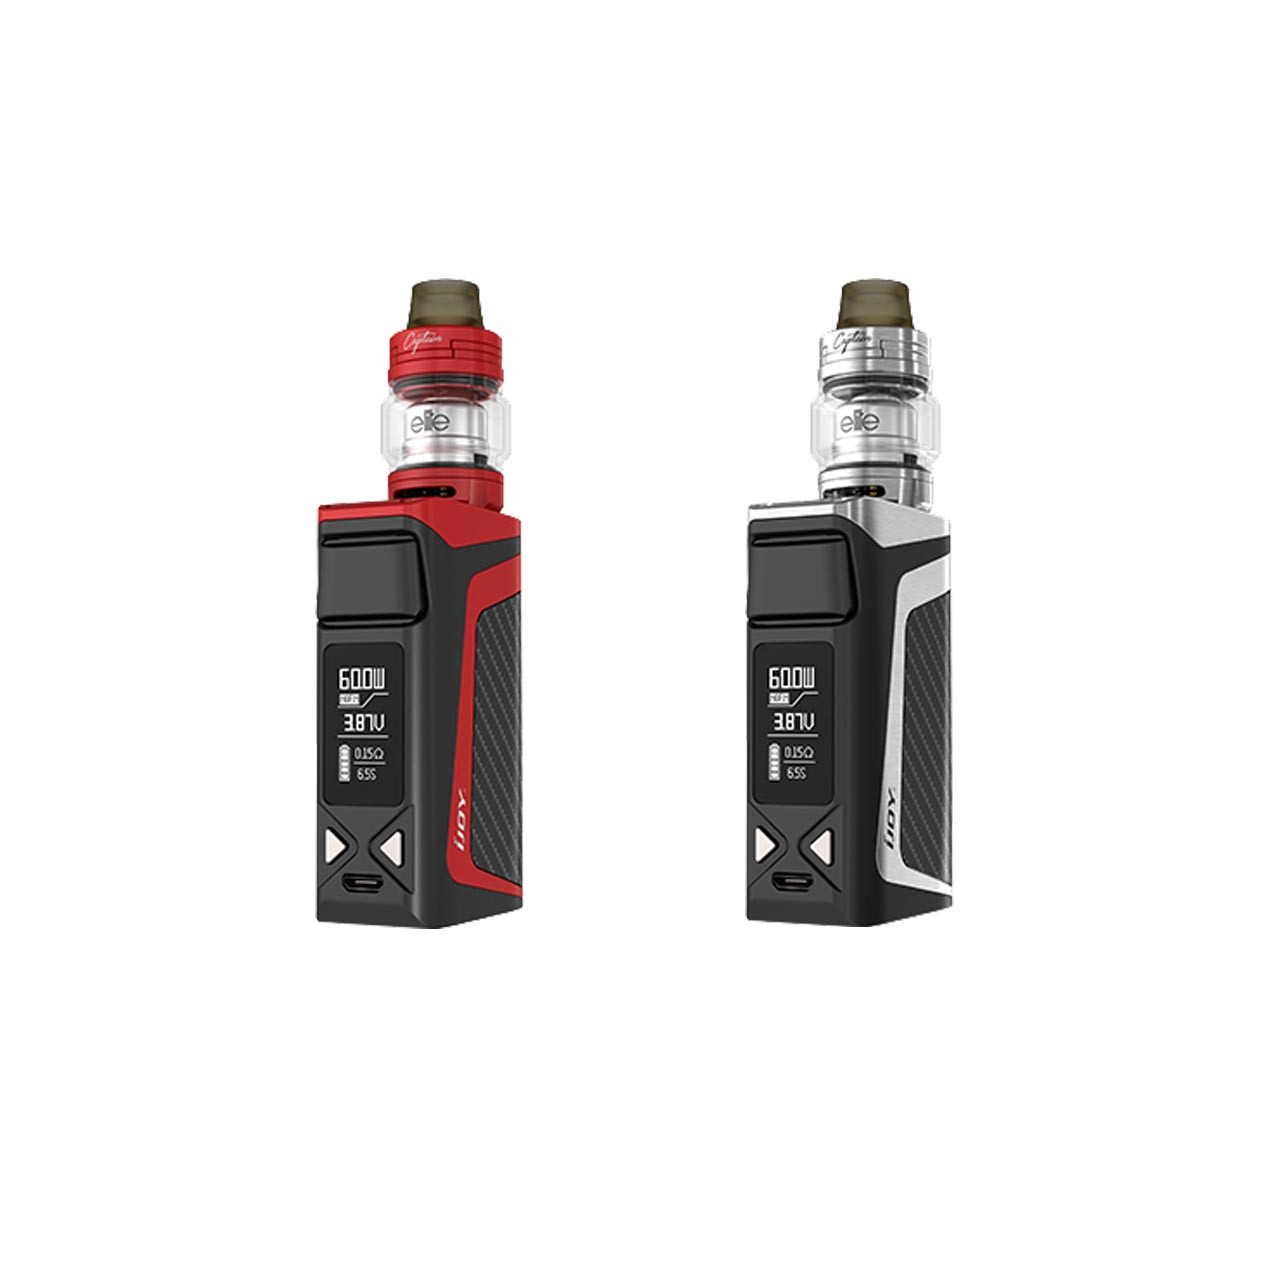 iJOY Elite Mini 60W Mod Kit